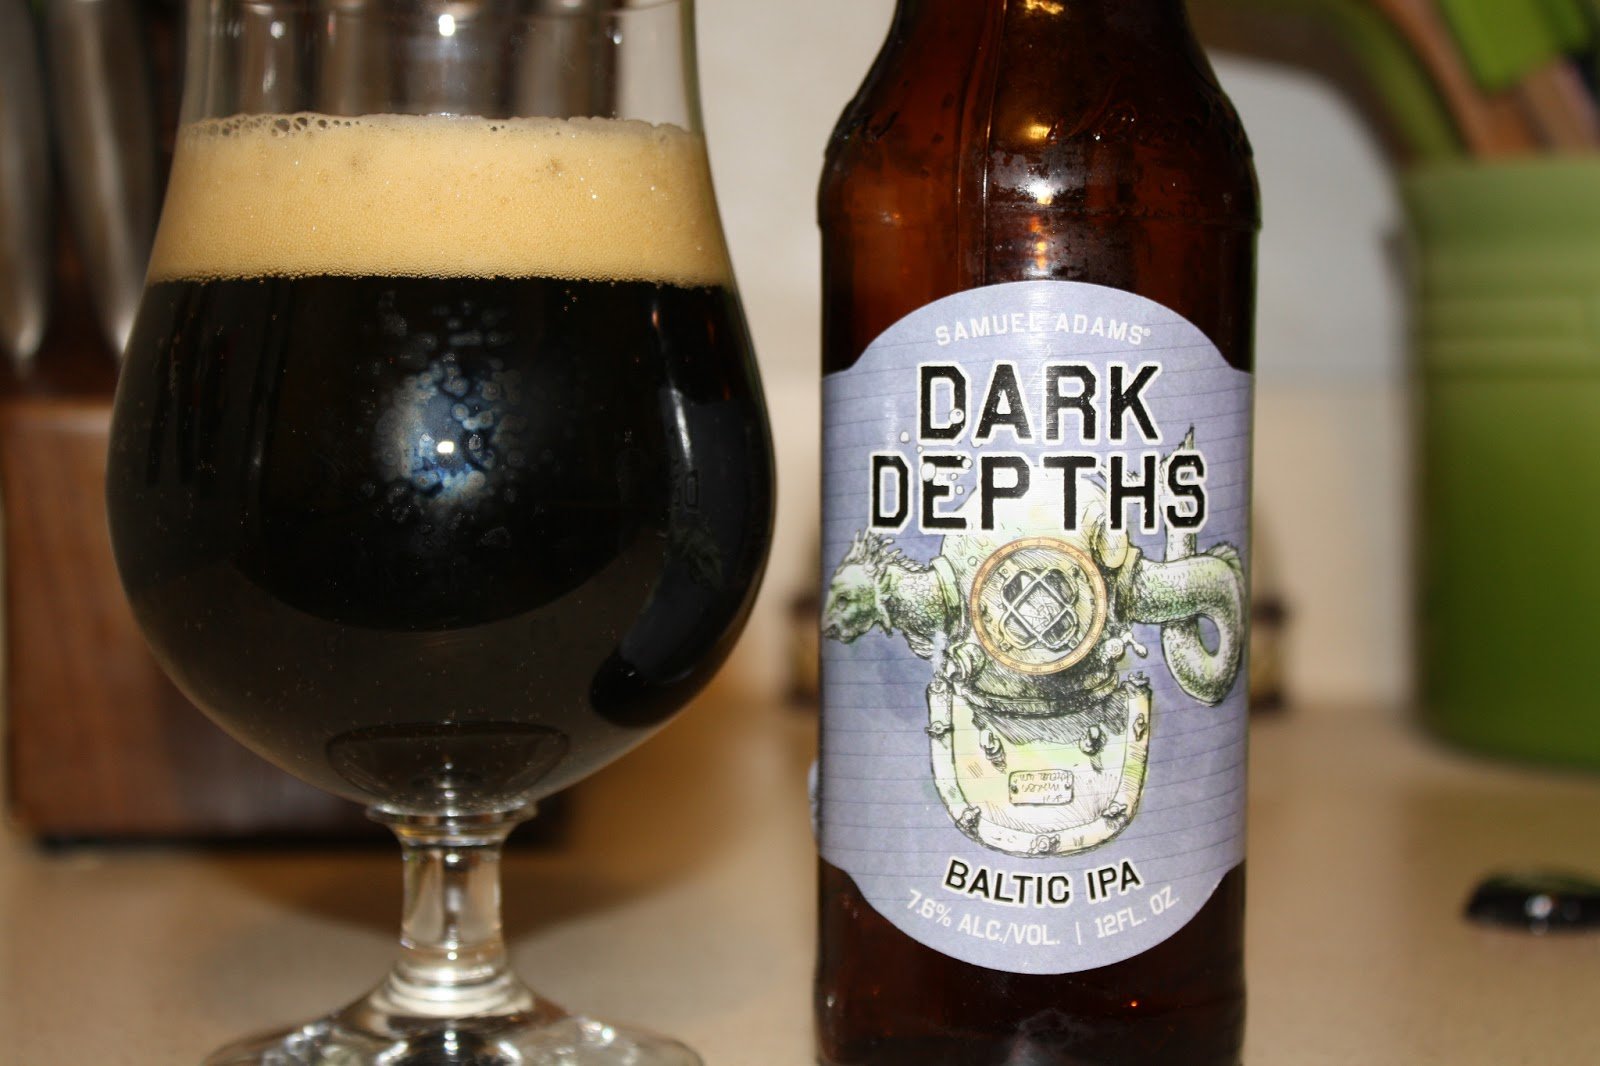 Samuel Adams Dark Depths Baltic IPA